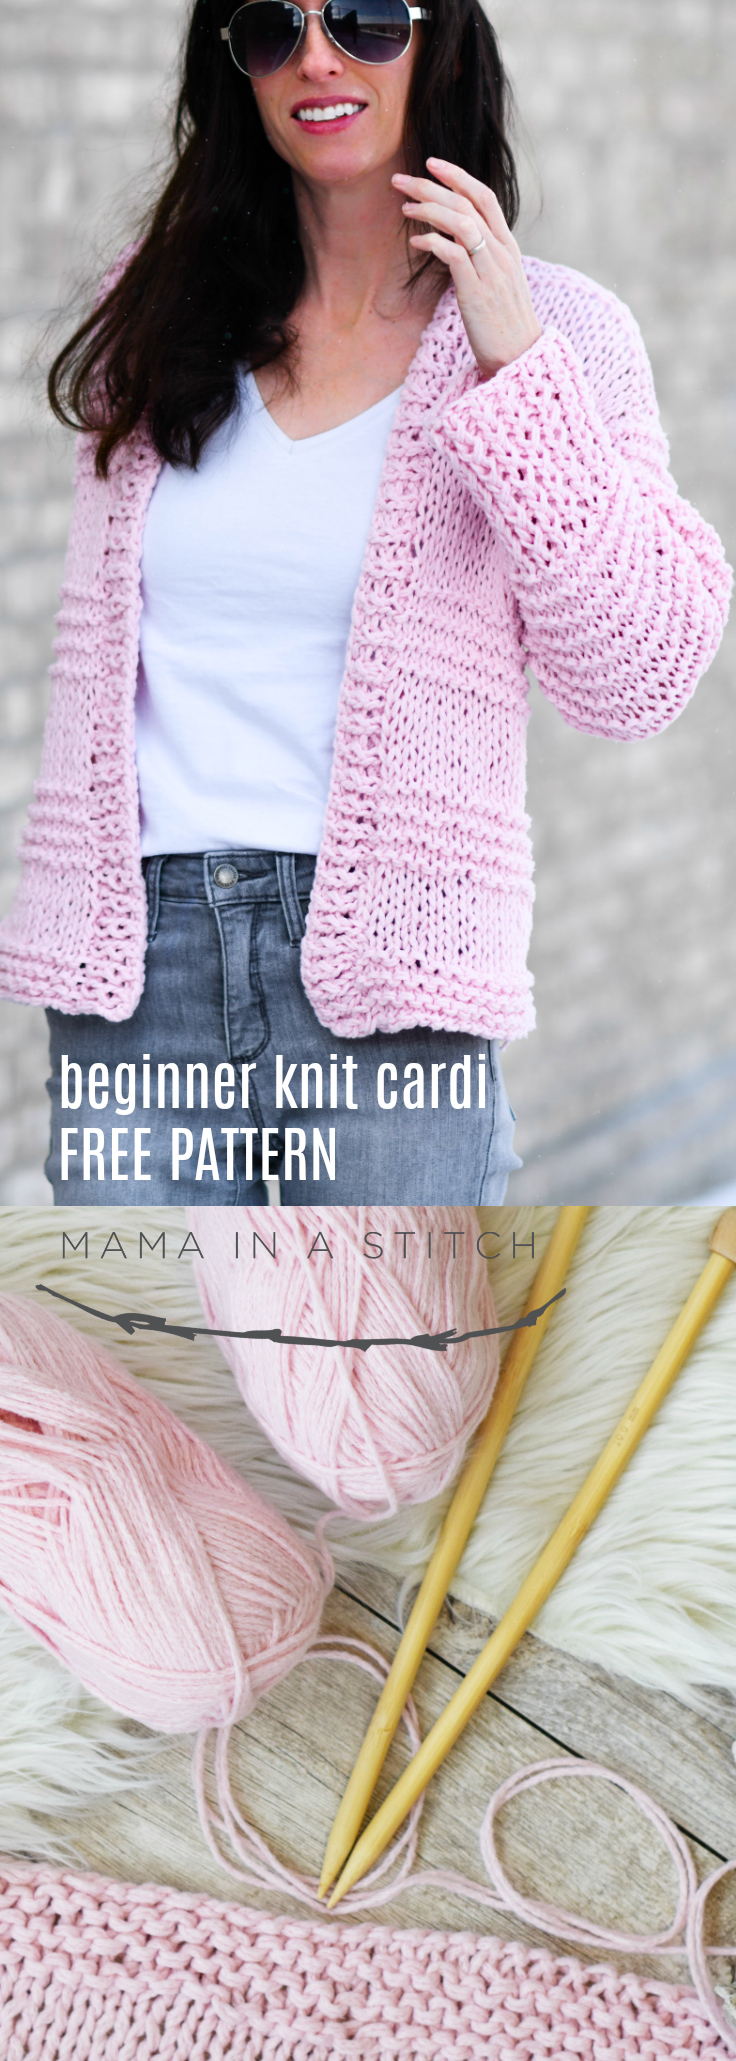 Cotton Candy Easy Knit Cardigan Pattern Mama In A Stitch